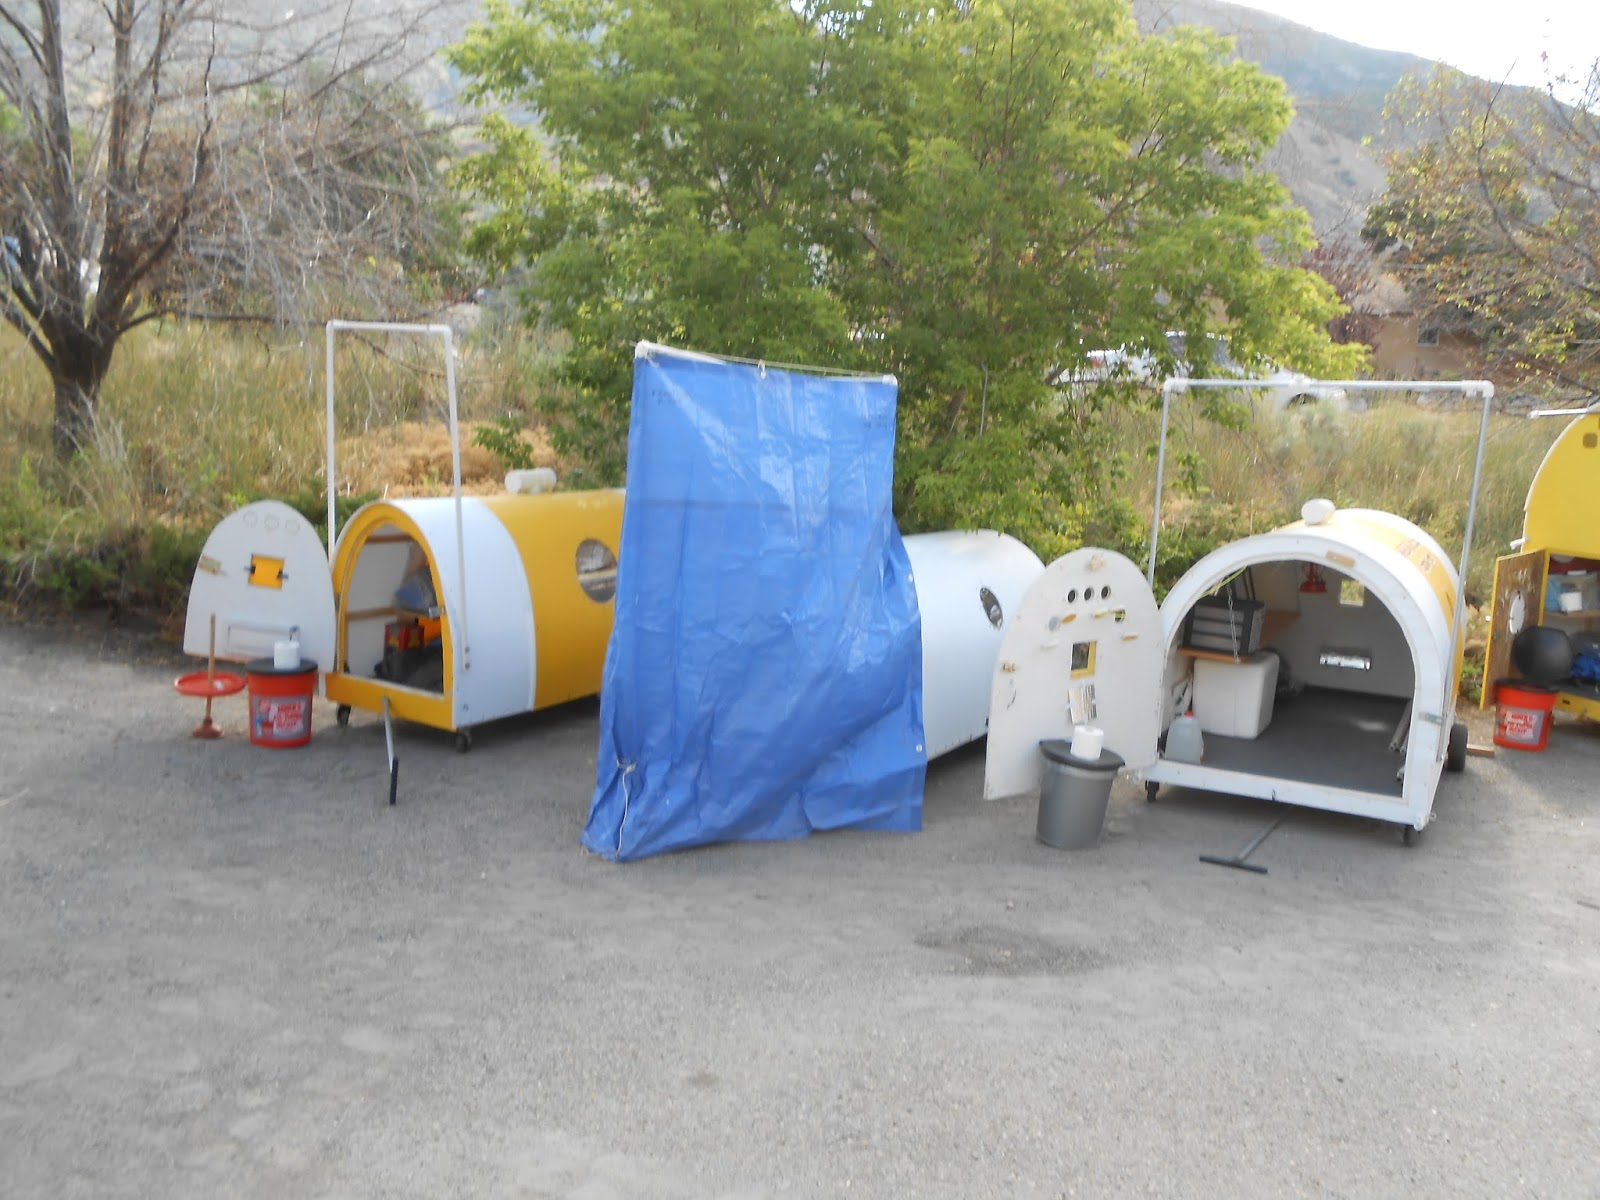 Pods For The Homeless Shelter : Build a dignity roller pod for the homeless pictures of